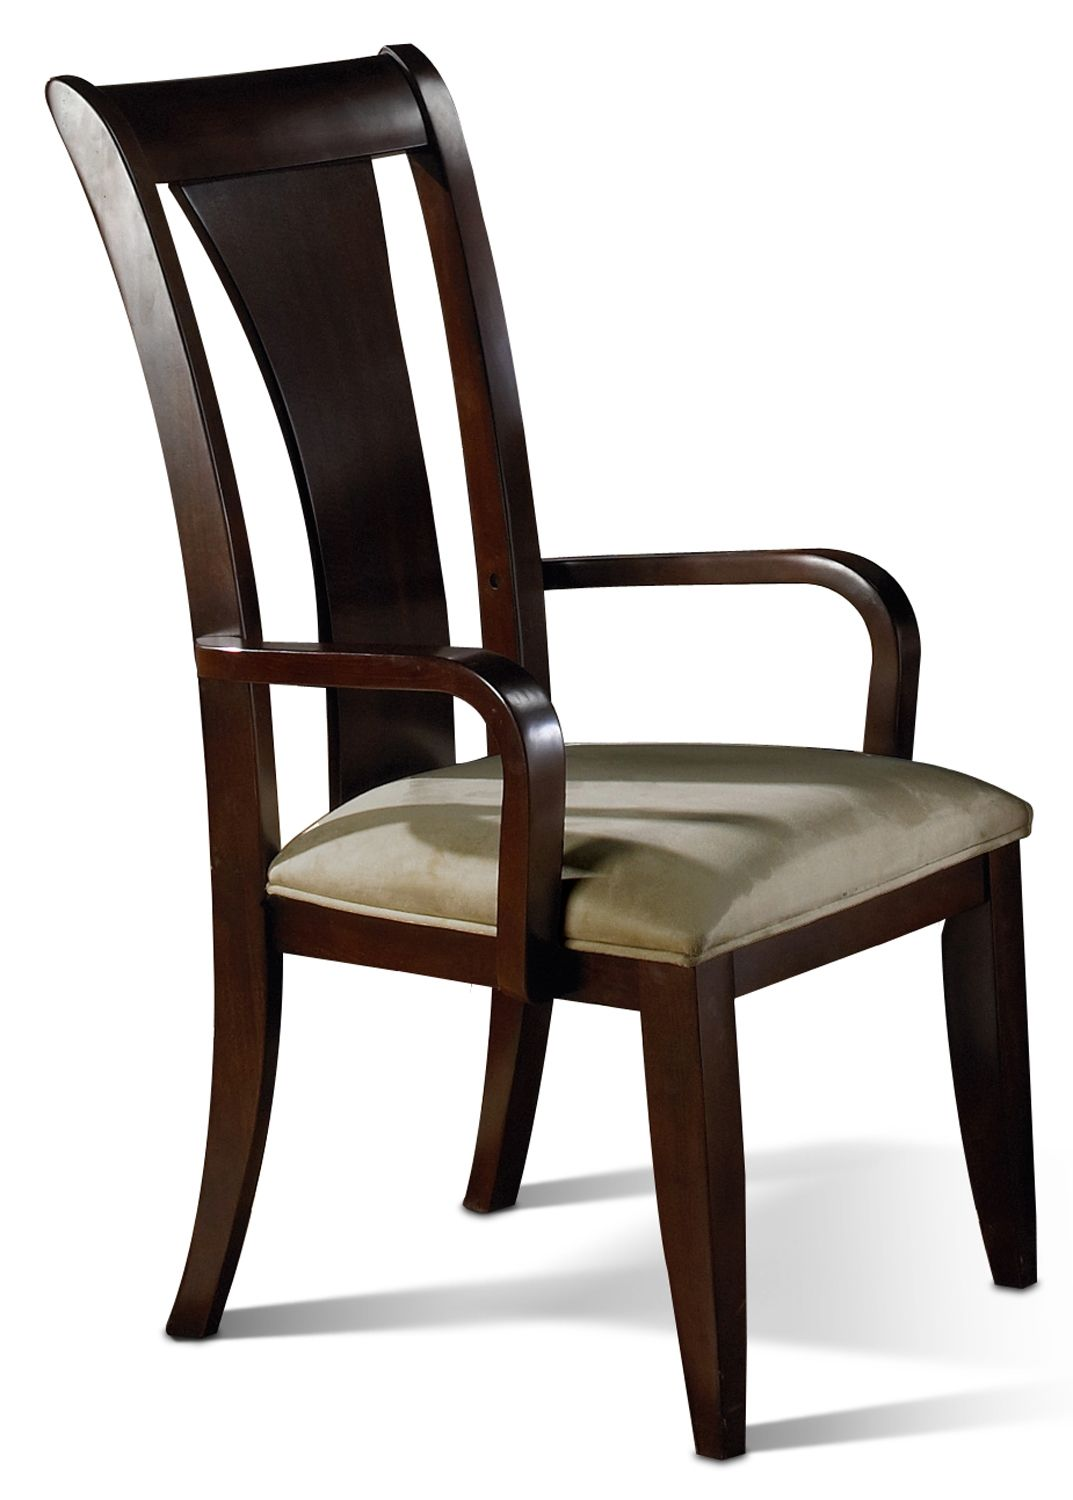 Dining room chairs with arms httpkitchendesign